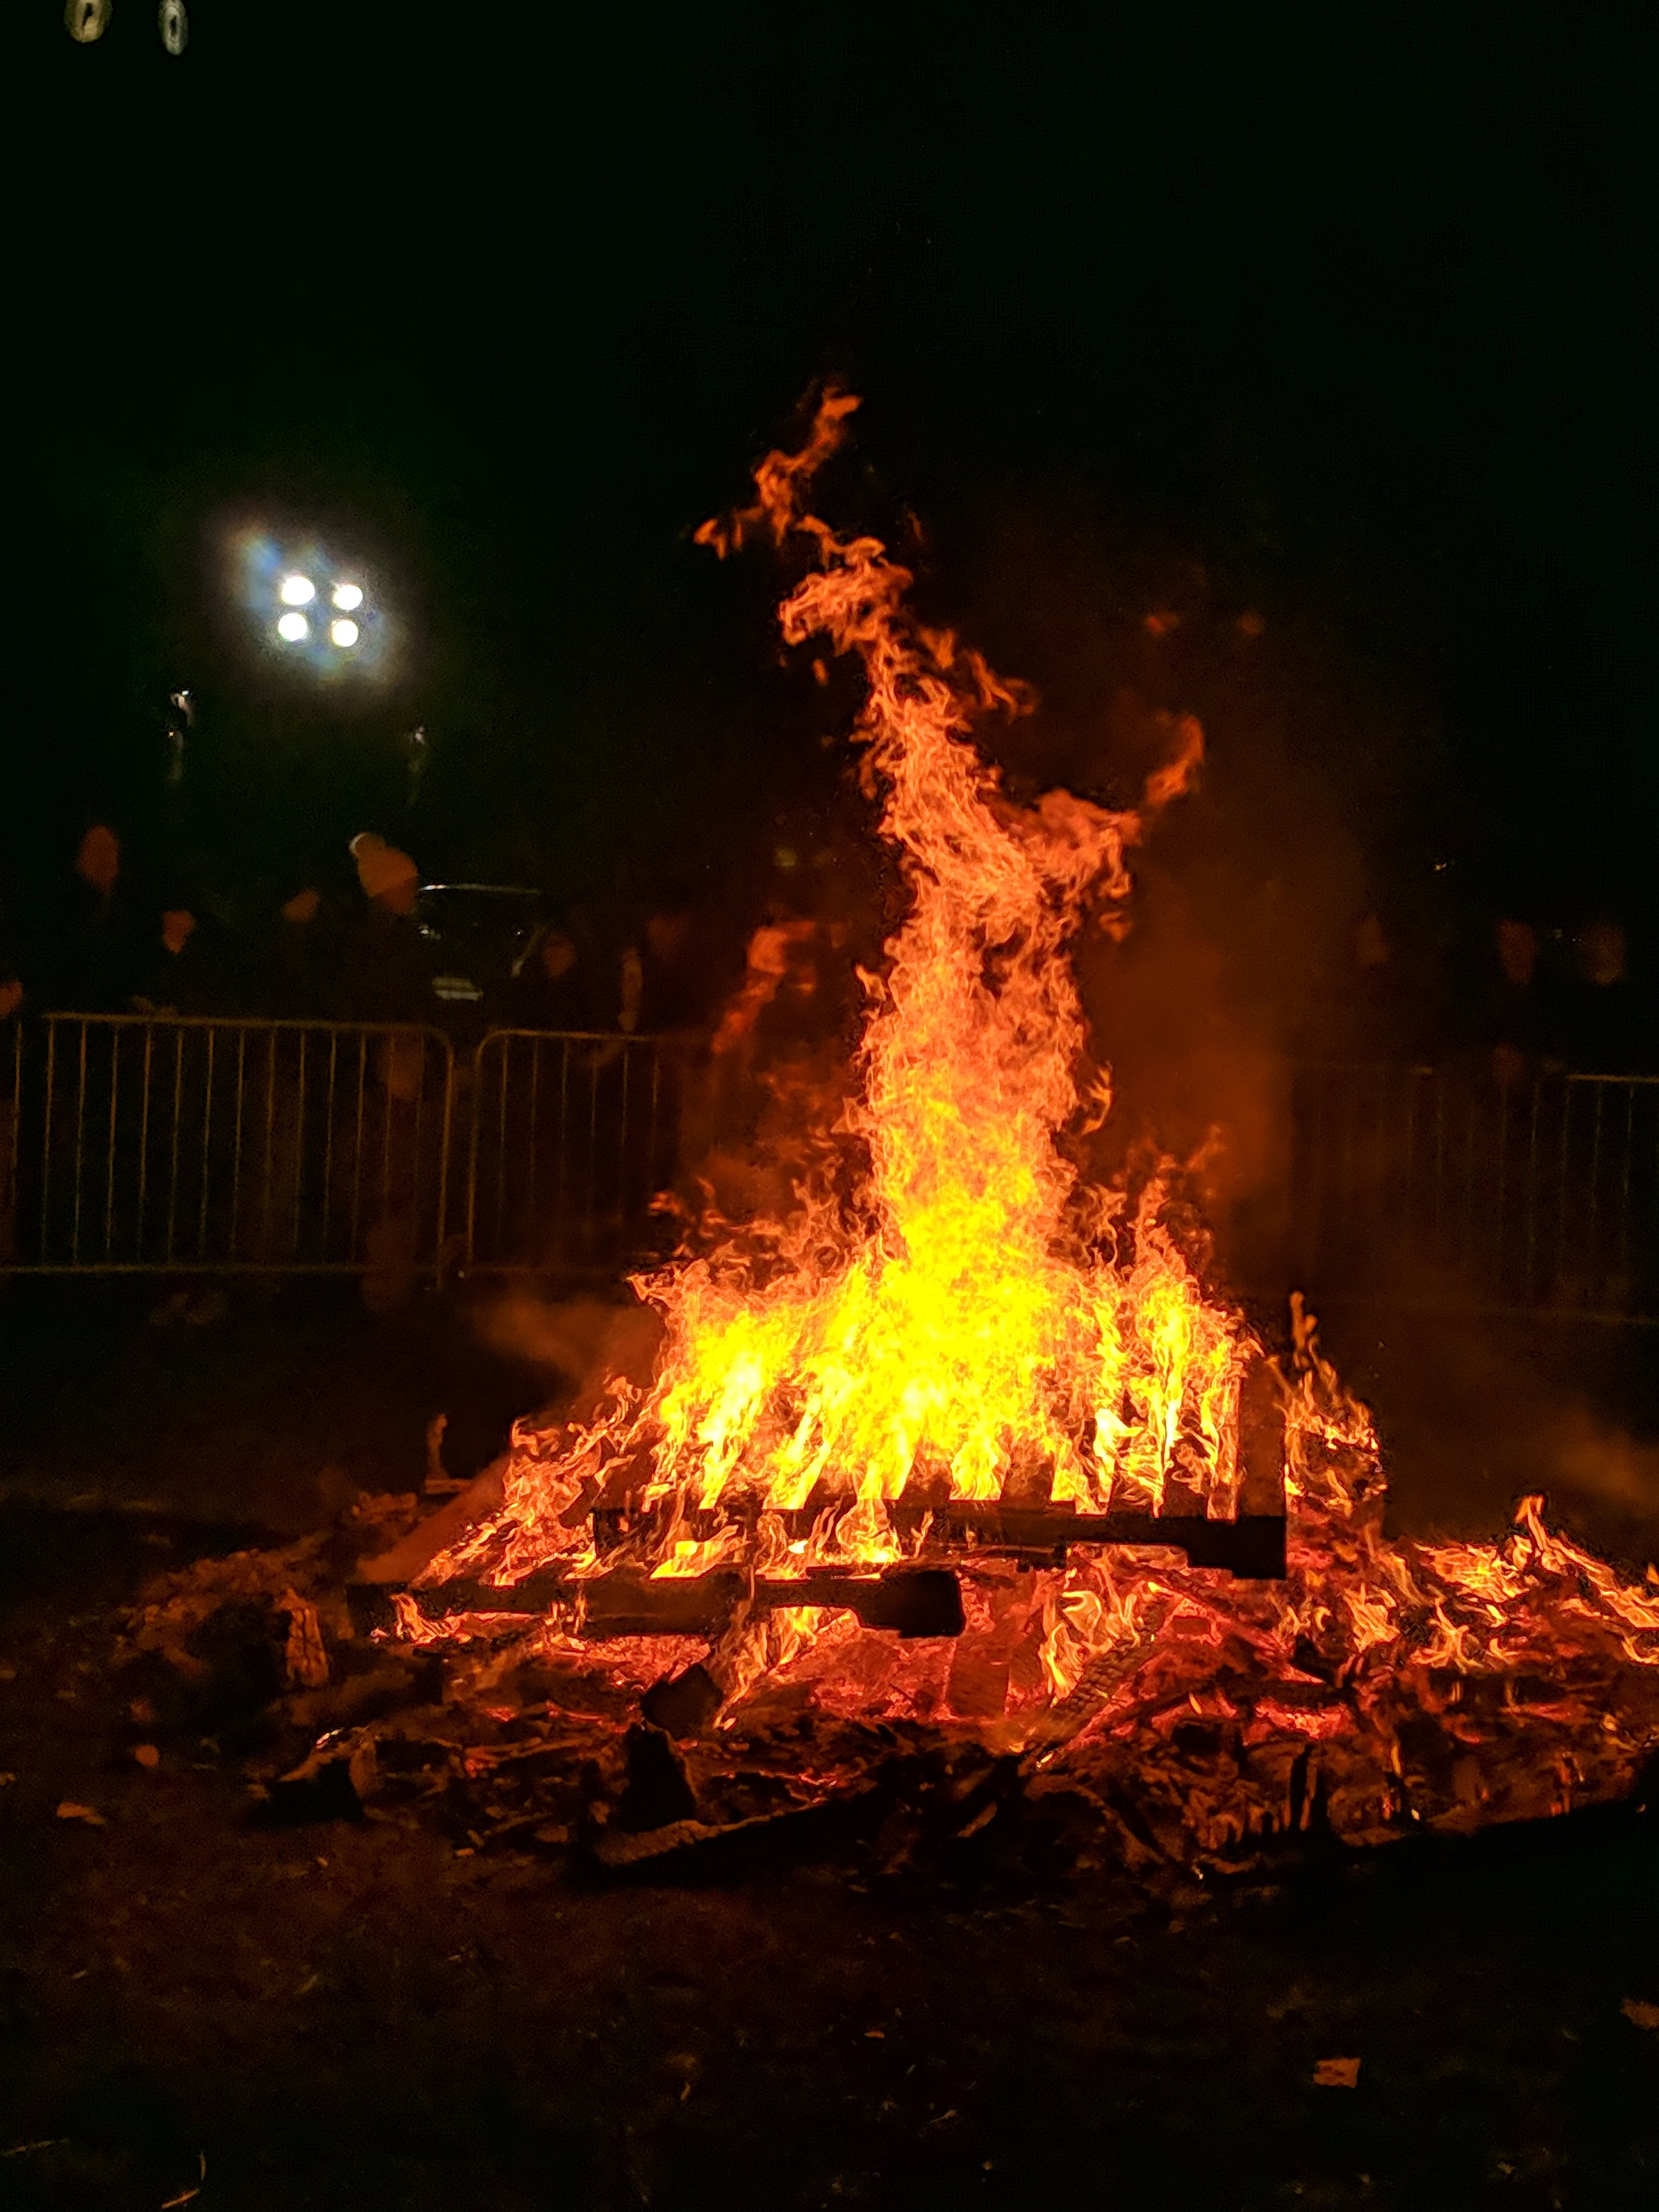 Let the Celebrations Begin: First Night and First Event for 375th Birthday of Branford